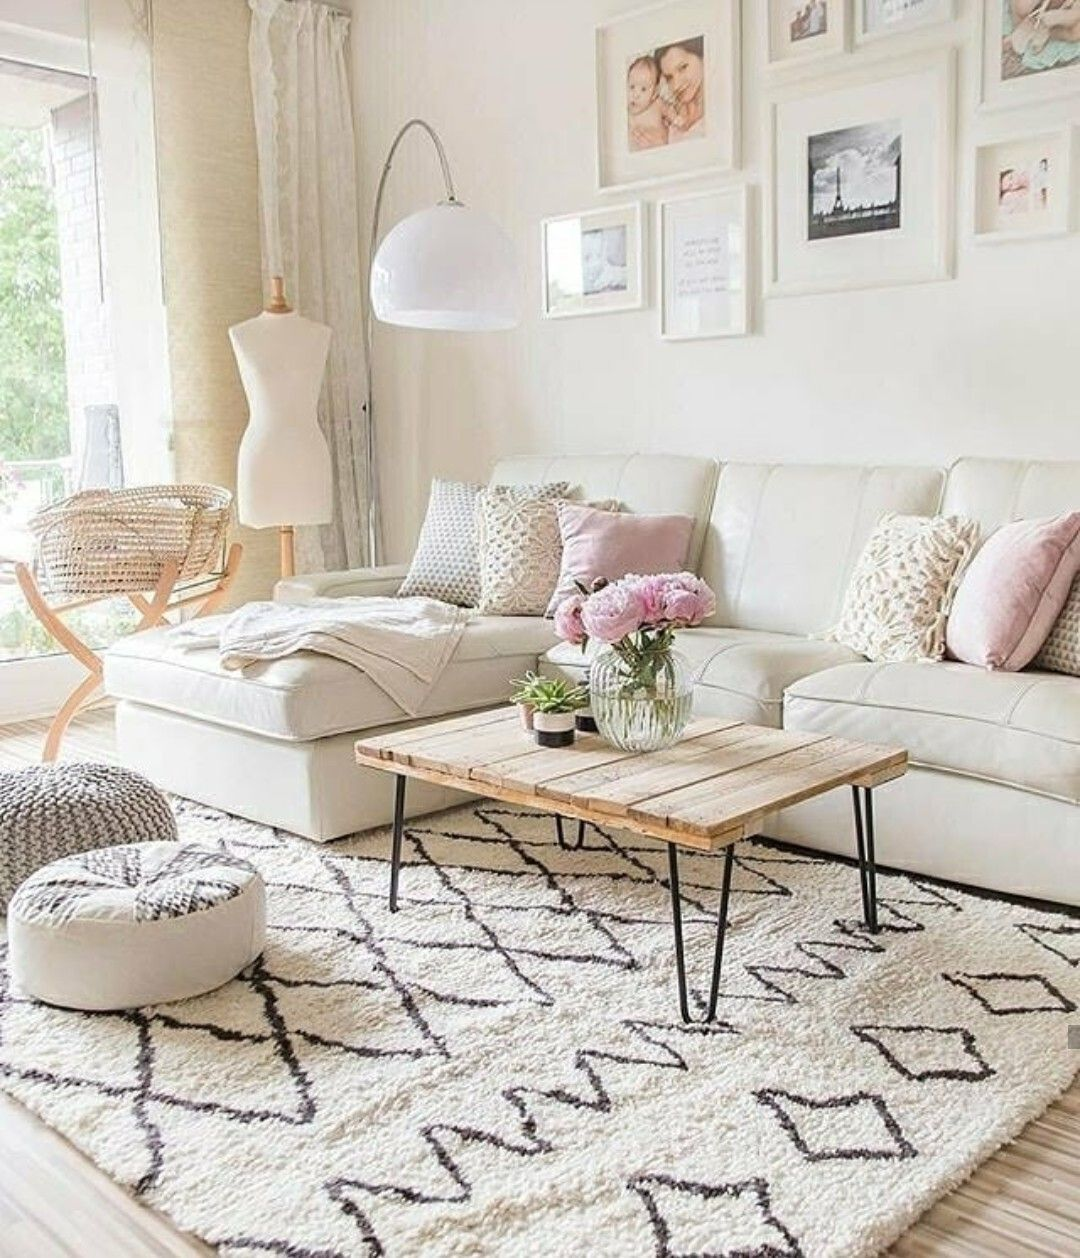 14 Cozy Modern Farmhouse Living Room Decor Ideas Modern Farmhouse Living Room Decor Farmhouse Decor Living Room Farm House Living Room